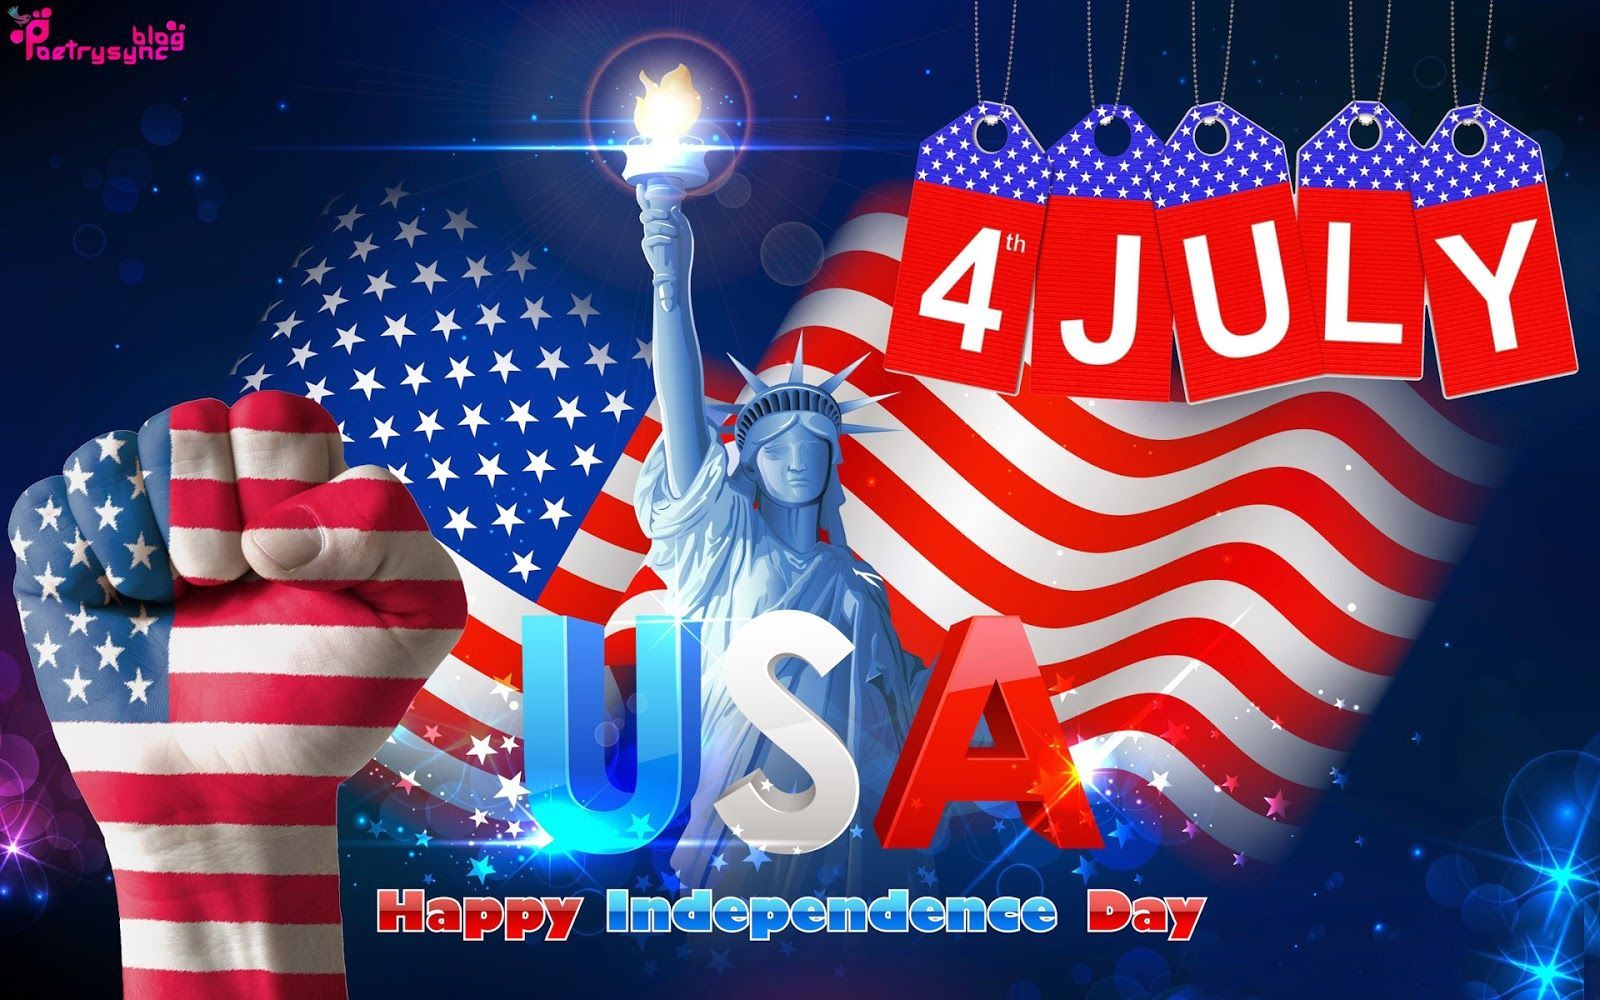 Usa Independence Day Month July 4th Of July Happy 4th Of July 4th Of July Qu Happy Independence Day Usa Independence Day Pictures Happy Independence Day Images